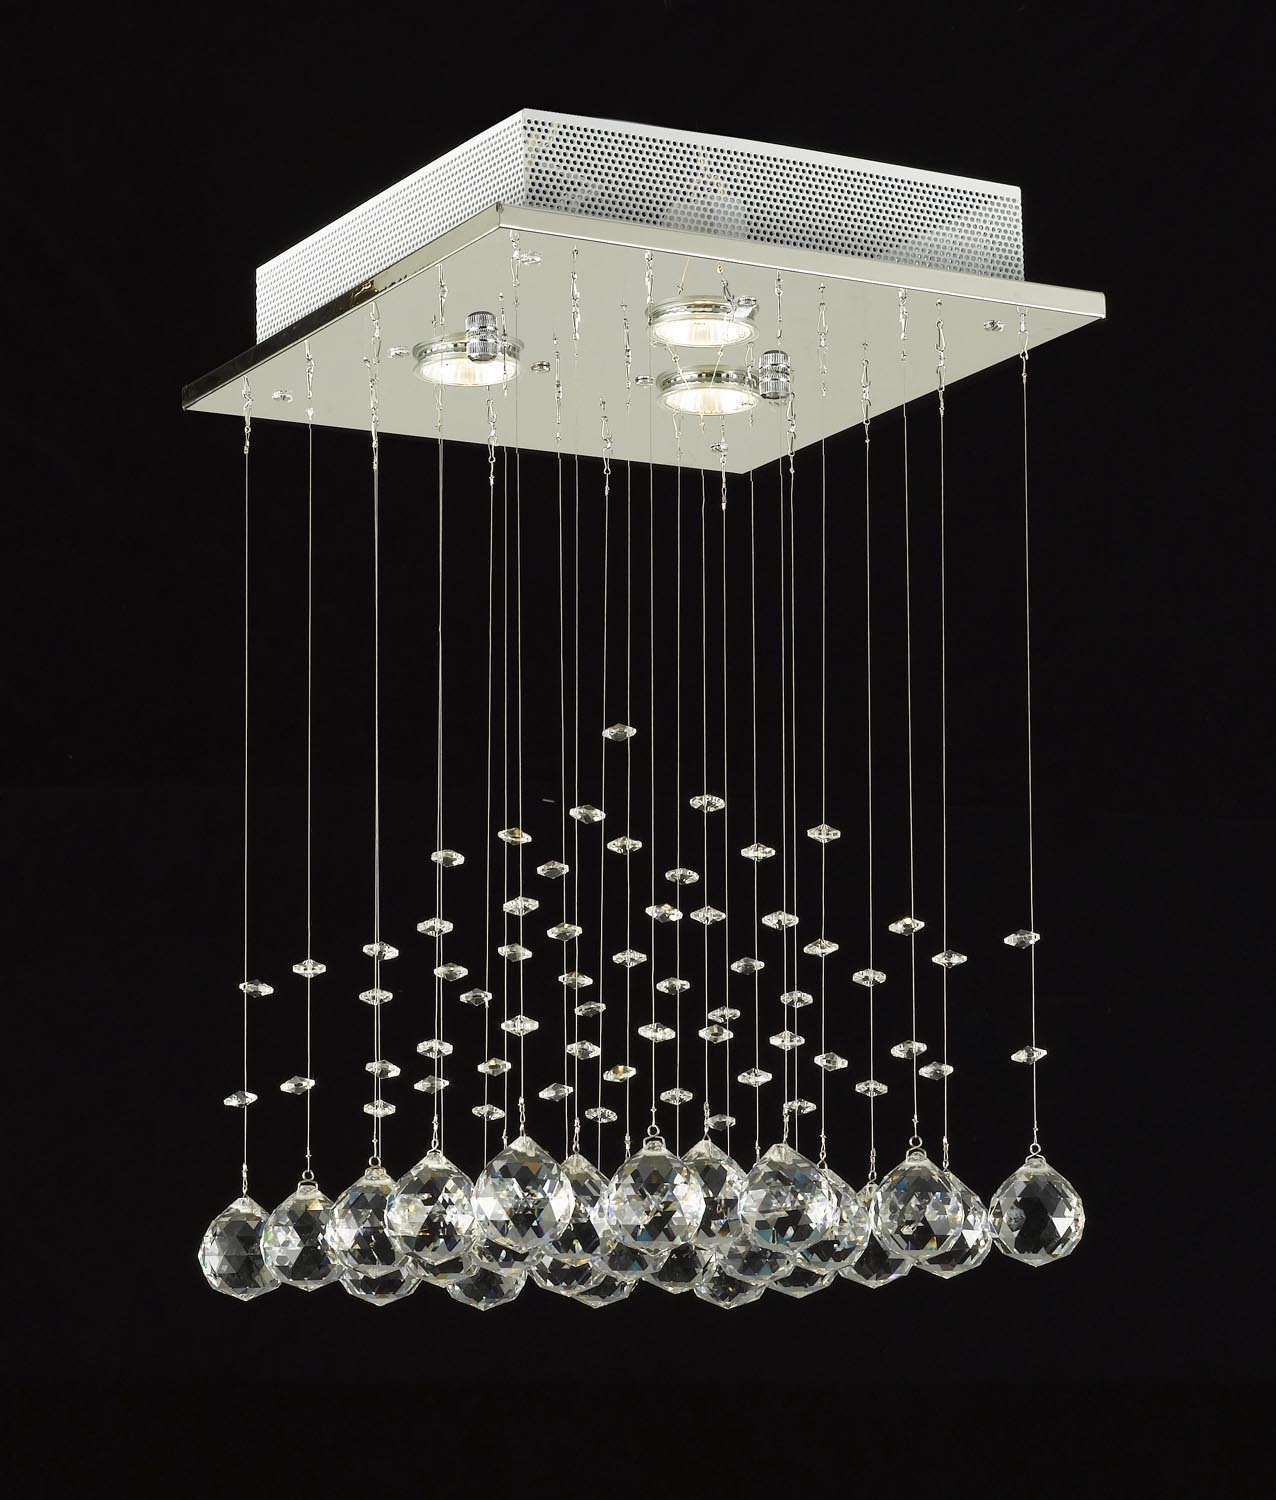 Cool Ceiling Light Fixture